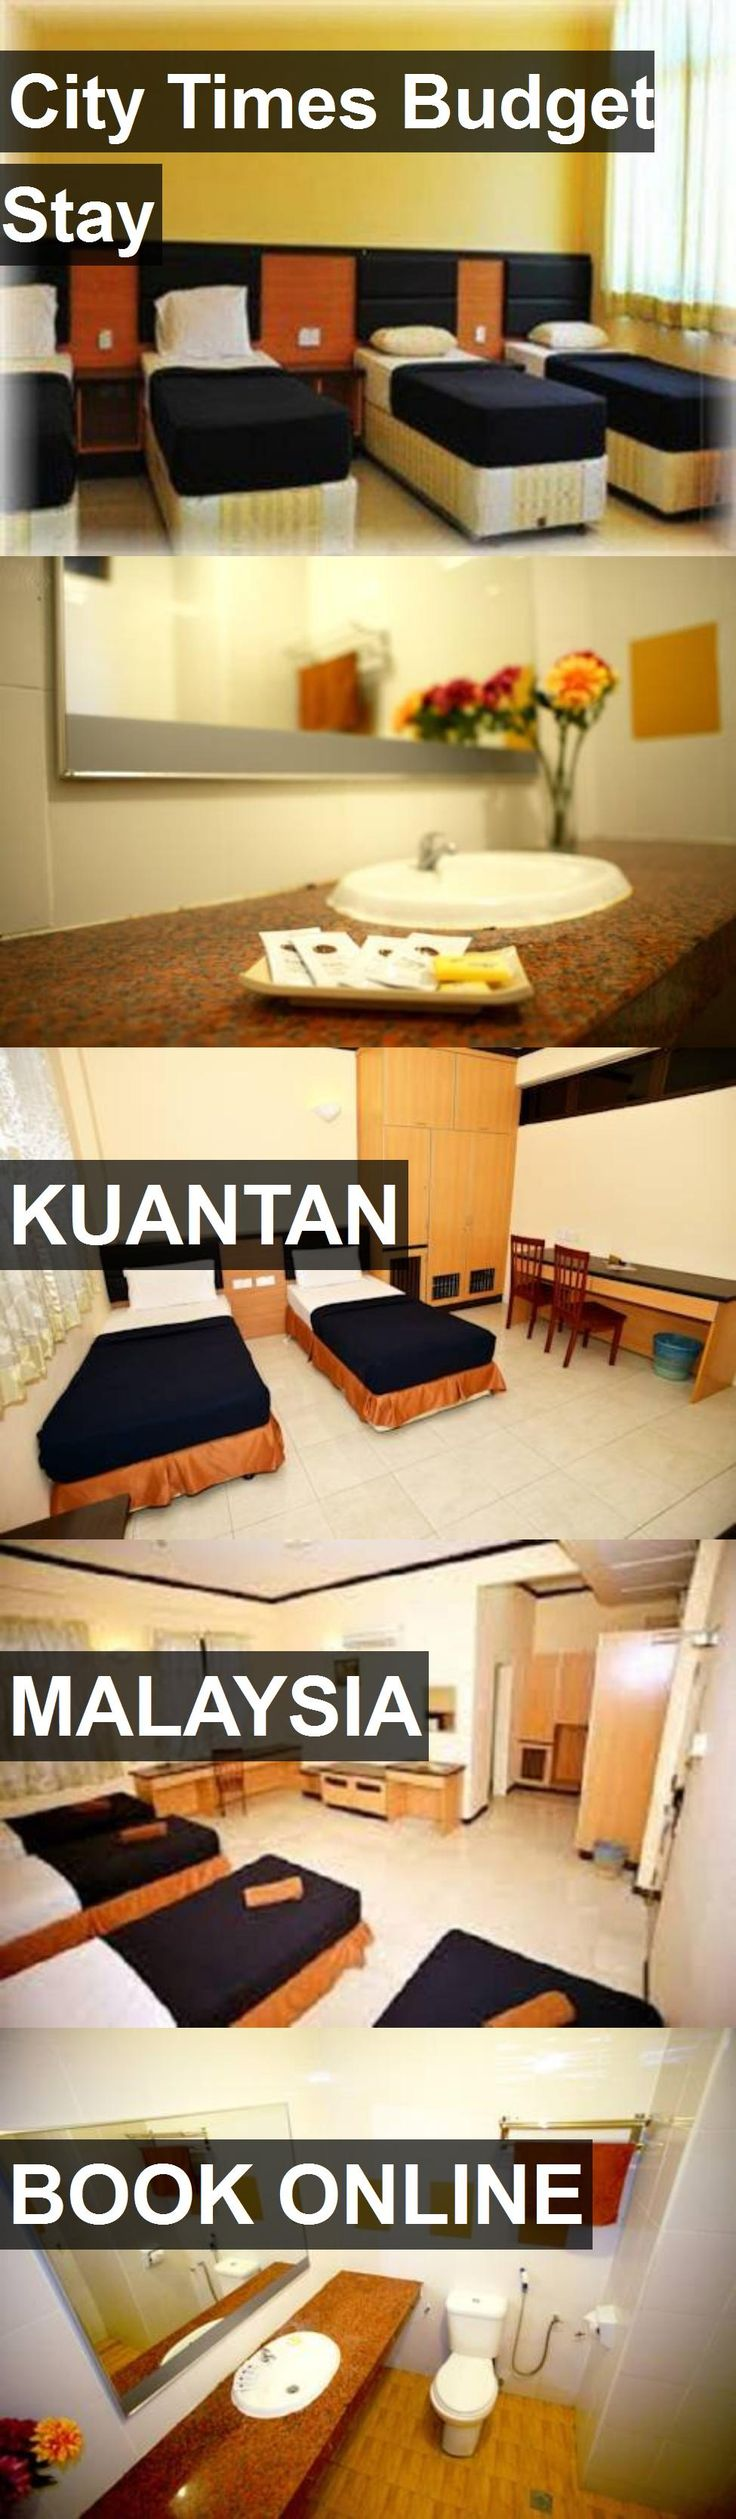 Hotel City Times Budget Stay in Kuantan, Malaysia. For more information, photos, reviews and best prices please follow the link. #Malaysia #Kuantan #CityTimesBudgetStay #hotel #travel #vacation